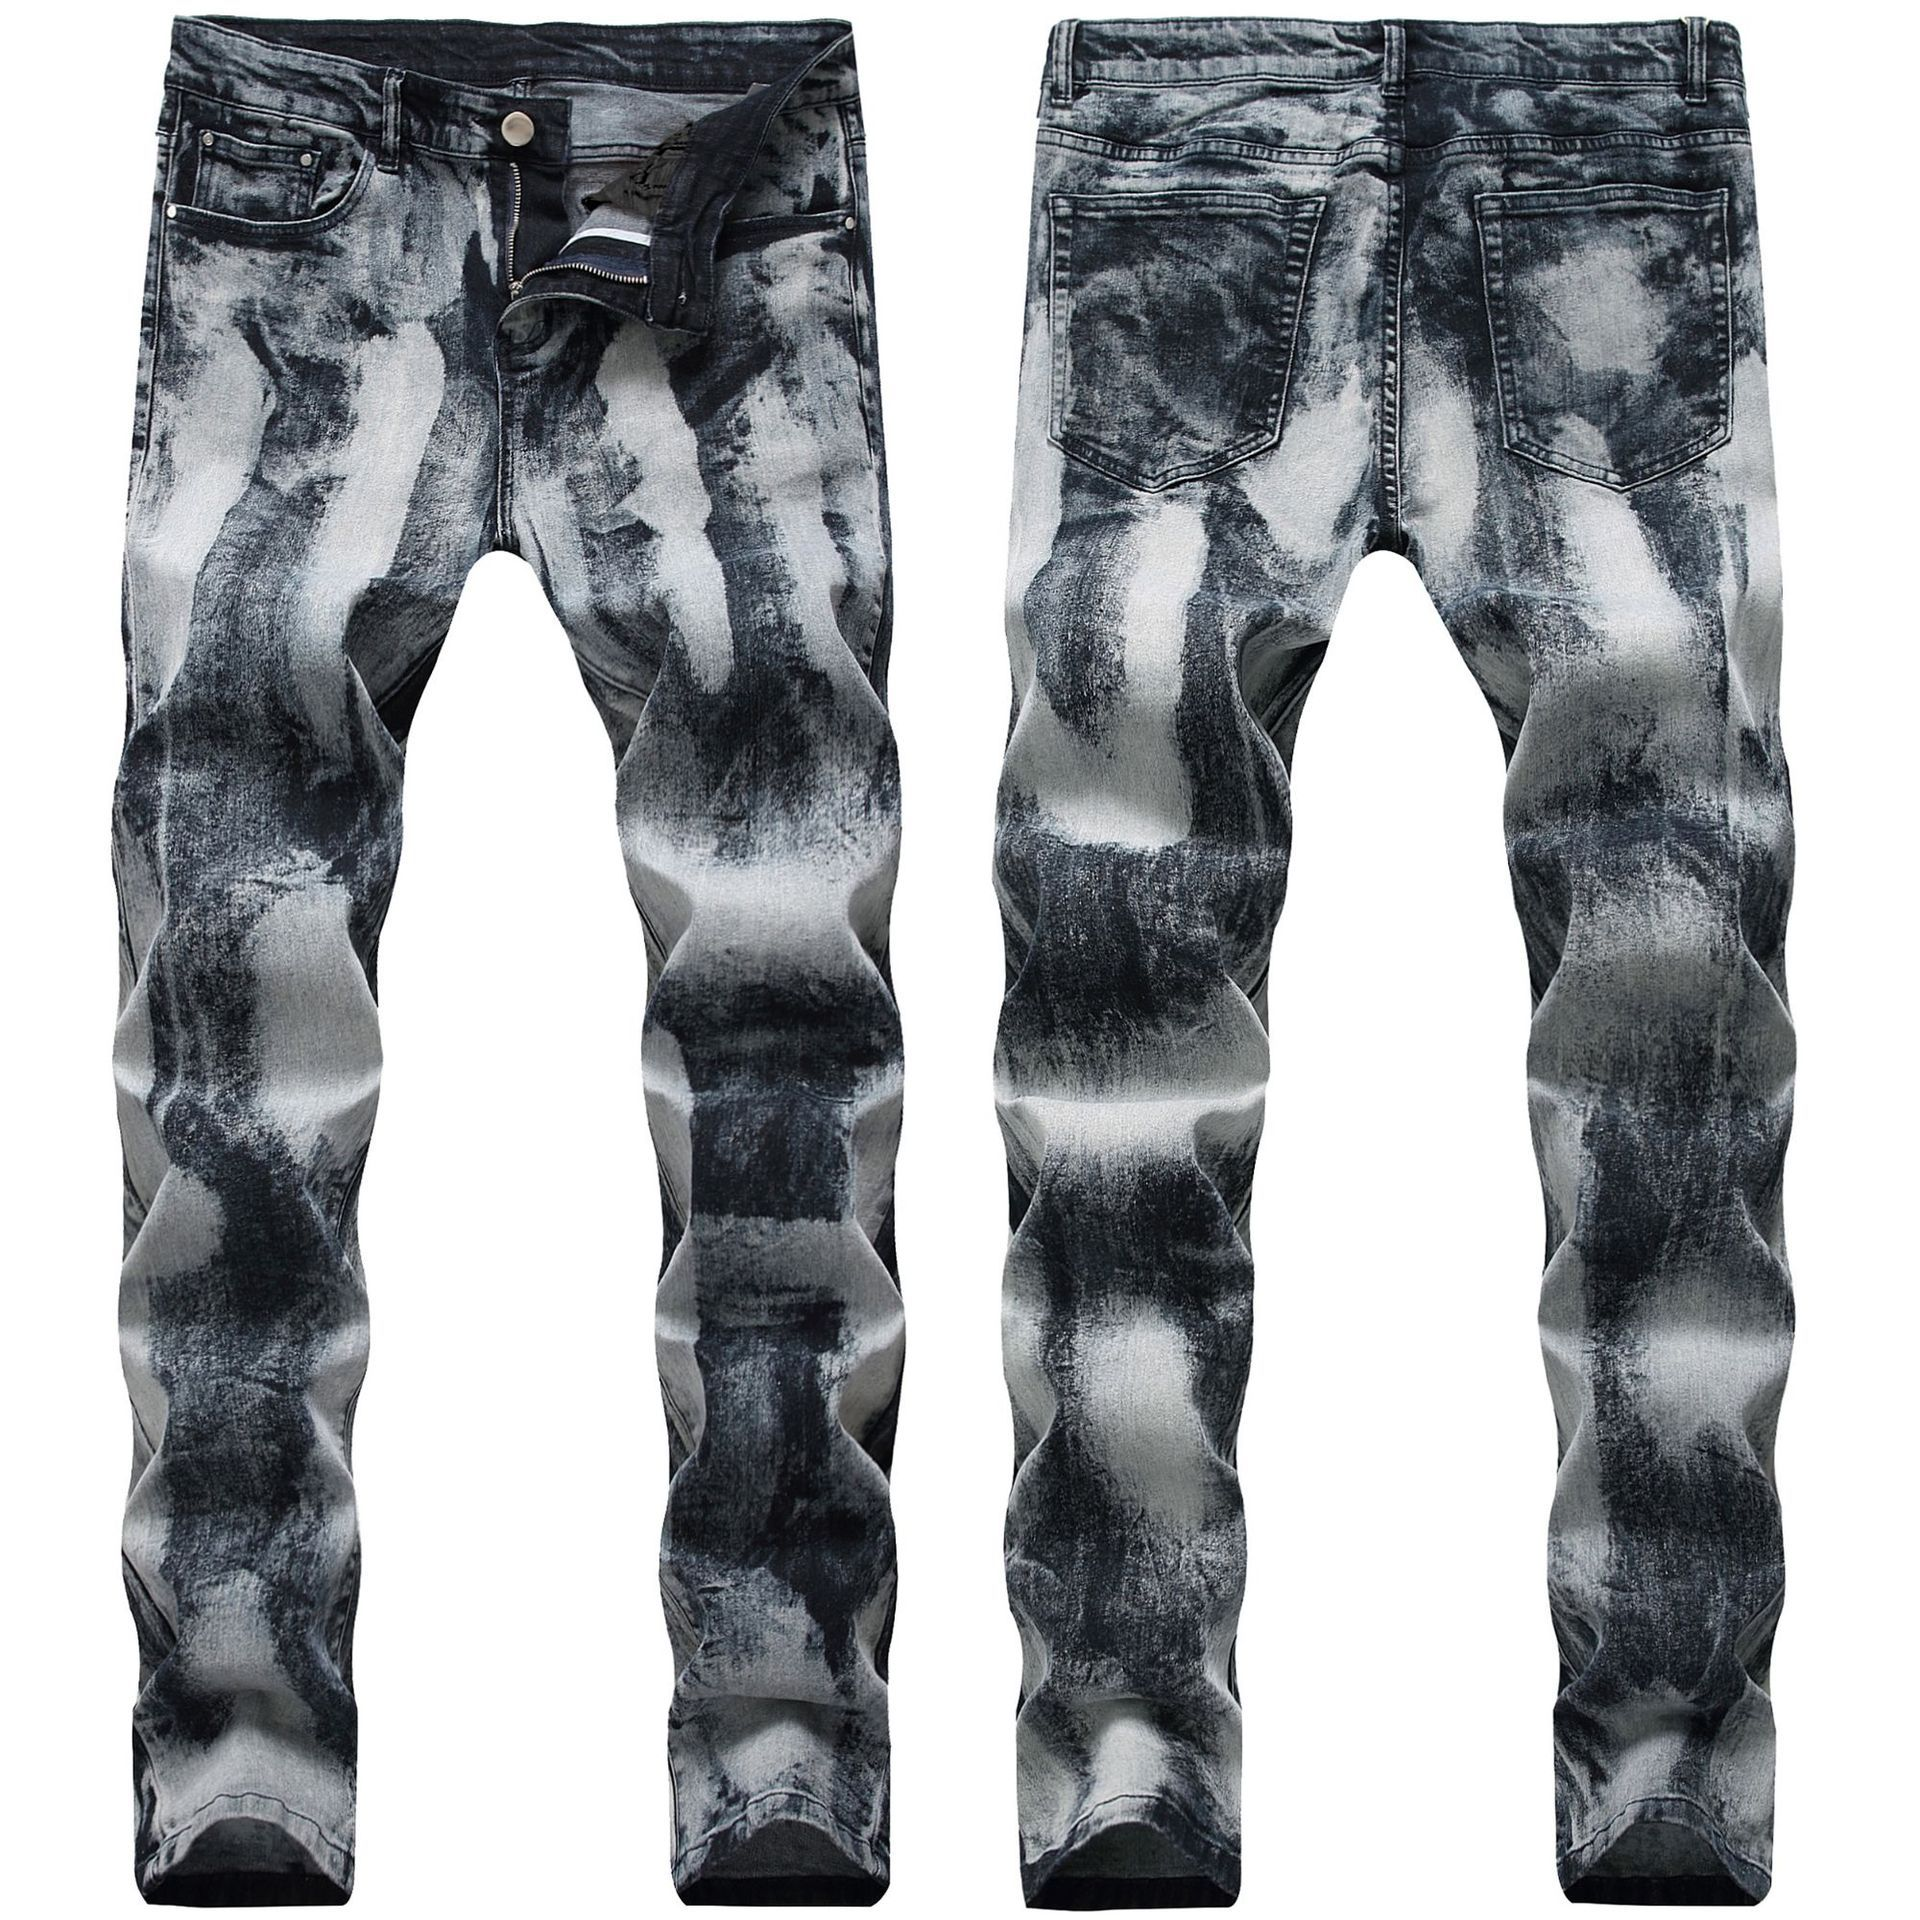 MEN'S WEAR Slim Fit Elasticity Drag Color Jeans Men Dyeing Gold Silver Cowboy Trousers Hot Sales